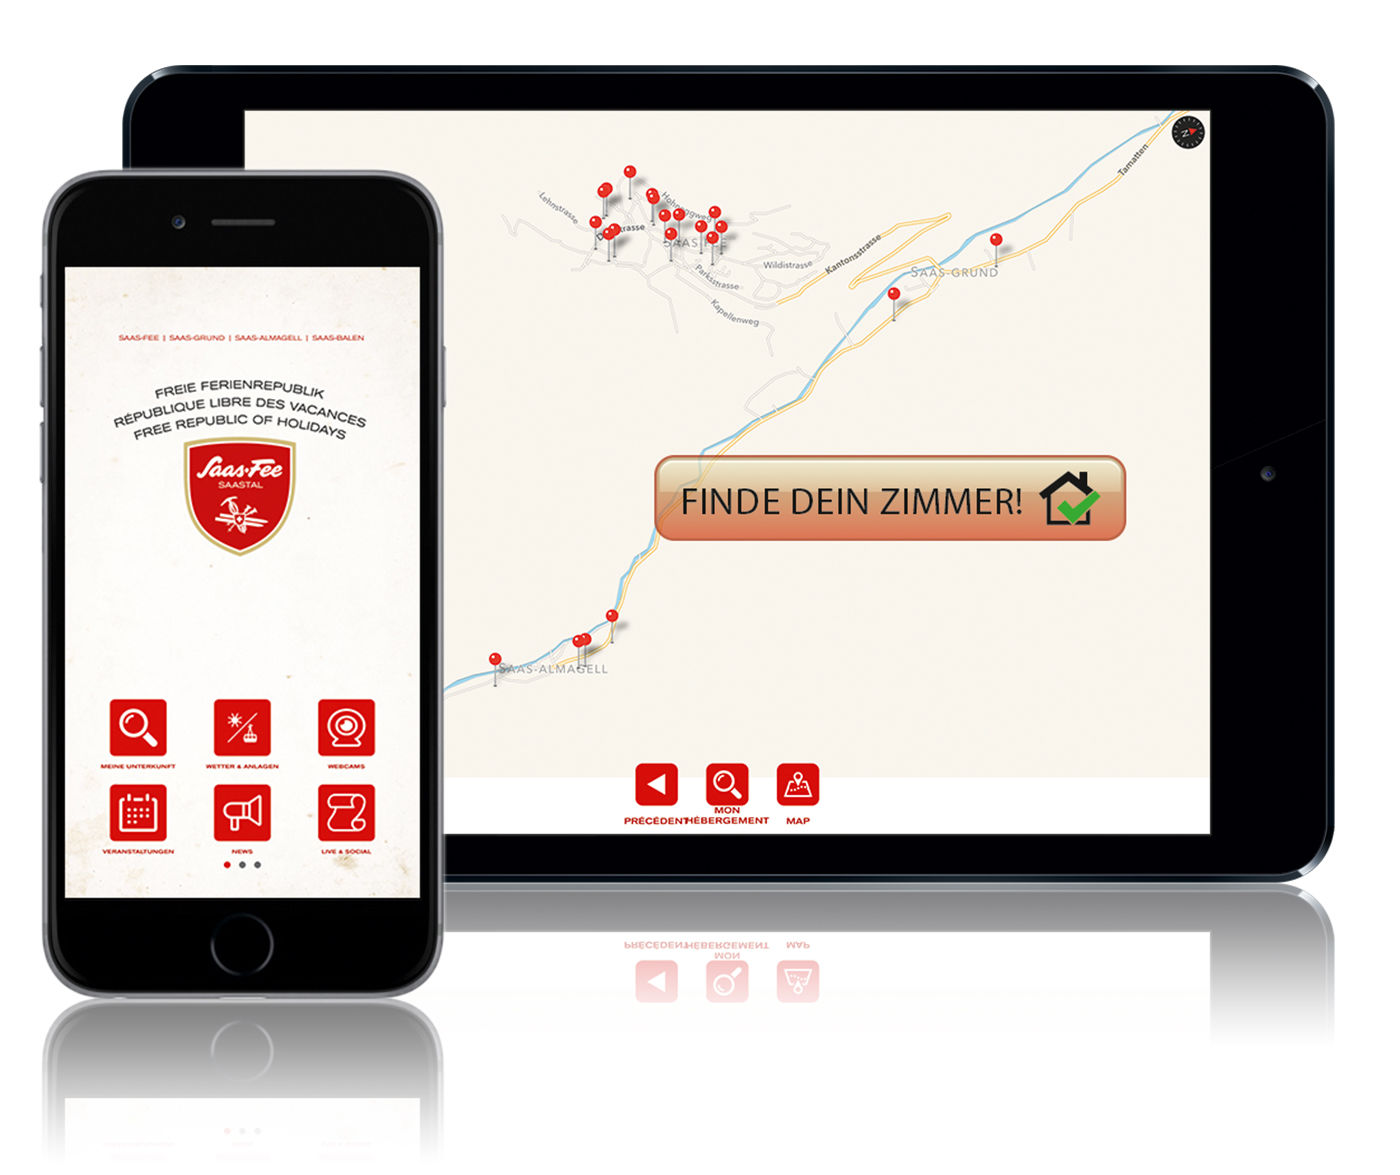 The App of the Free Republic of Holidays Saas-Fee